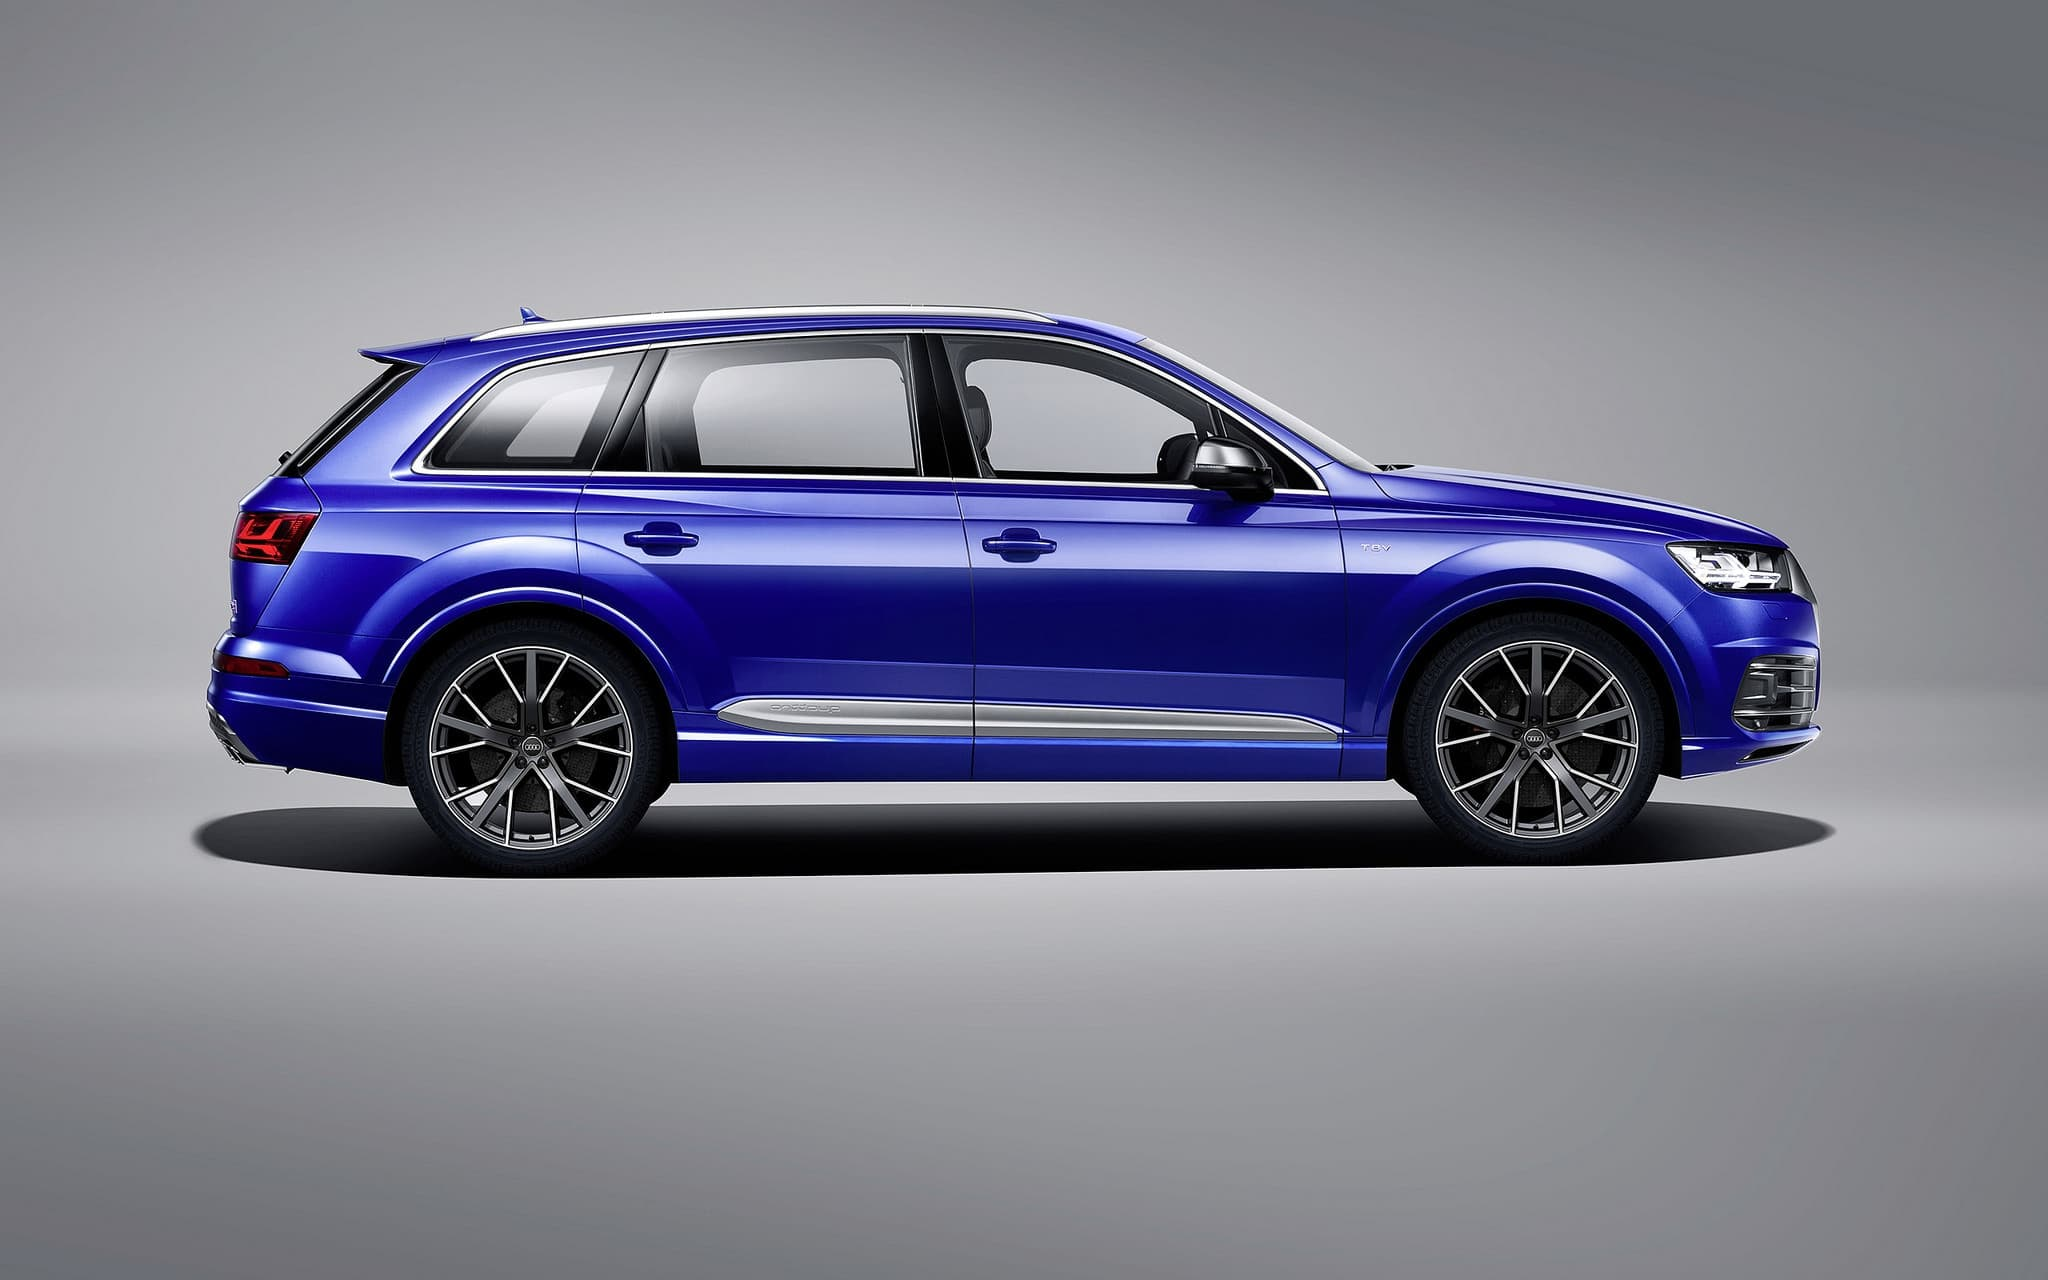 Audi Rs3 Wallpaper Hd 2016 Audi Sq7 Wallpapers Hd High Quality